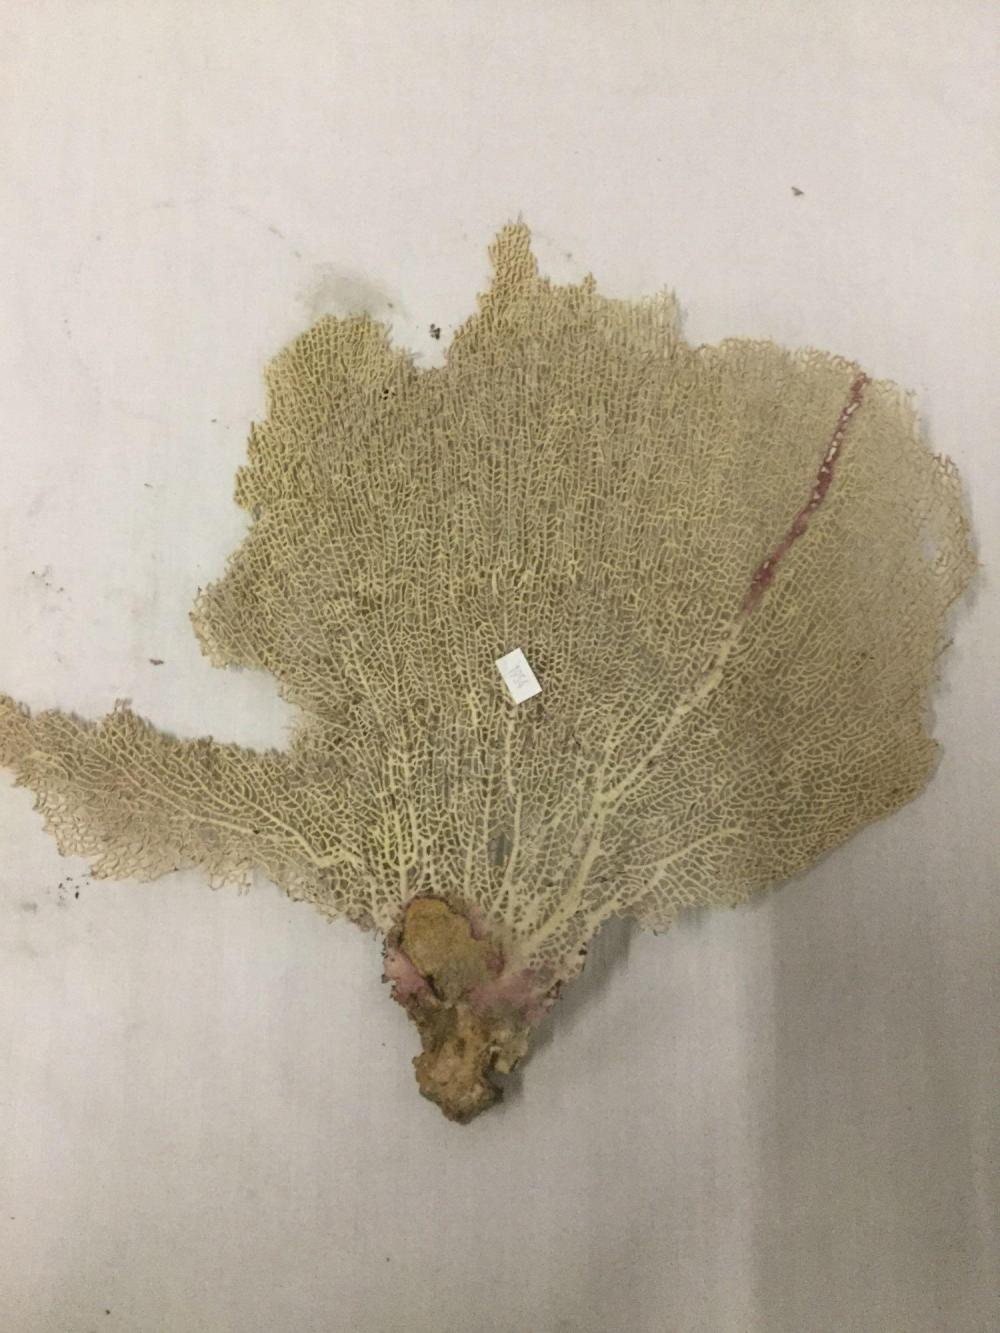 Lot 195: 2 pc of dried coral - largest measures 15x13x1